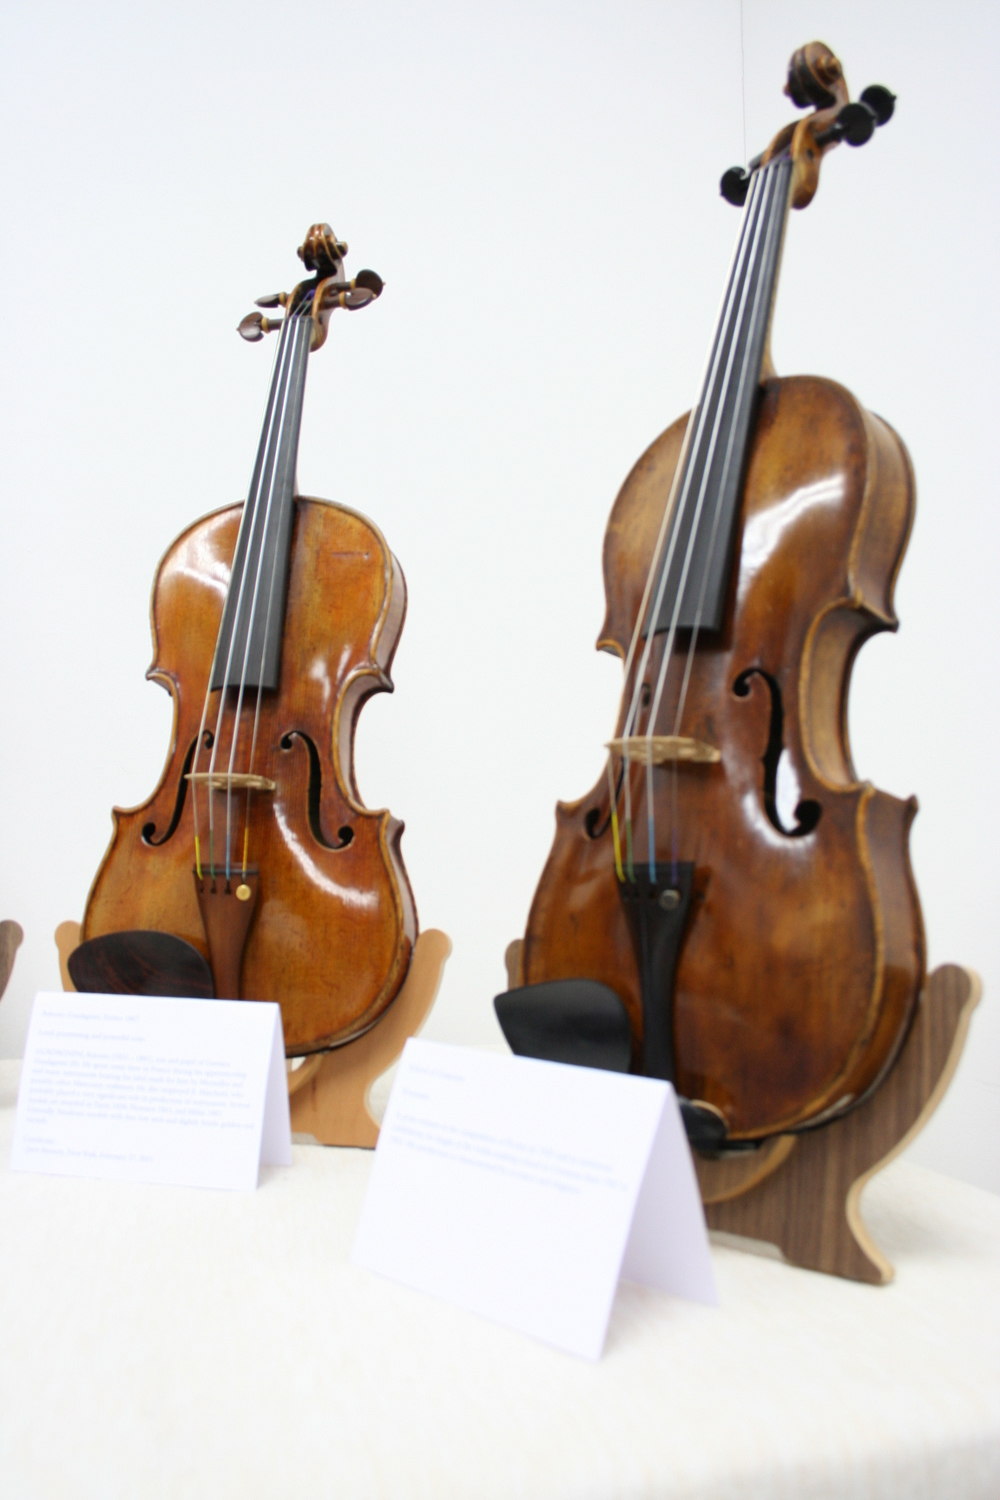 A Guadagnini and a Grancino, just 2 of the violins showcased